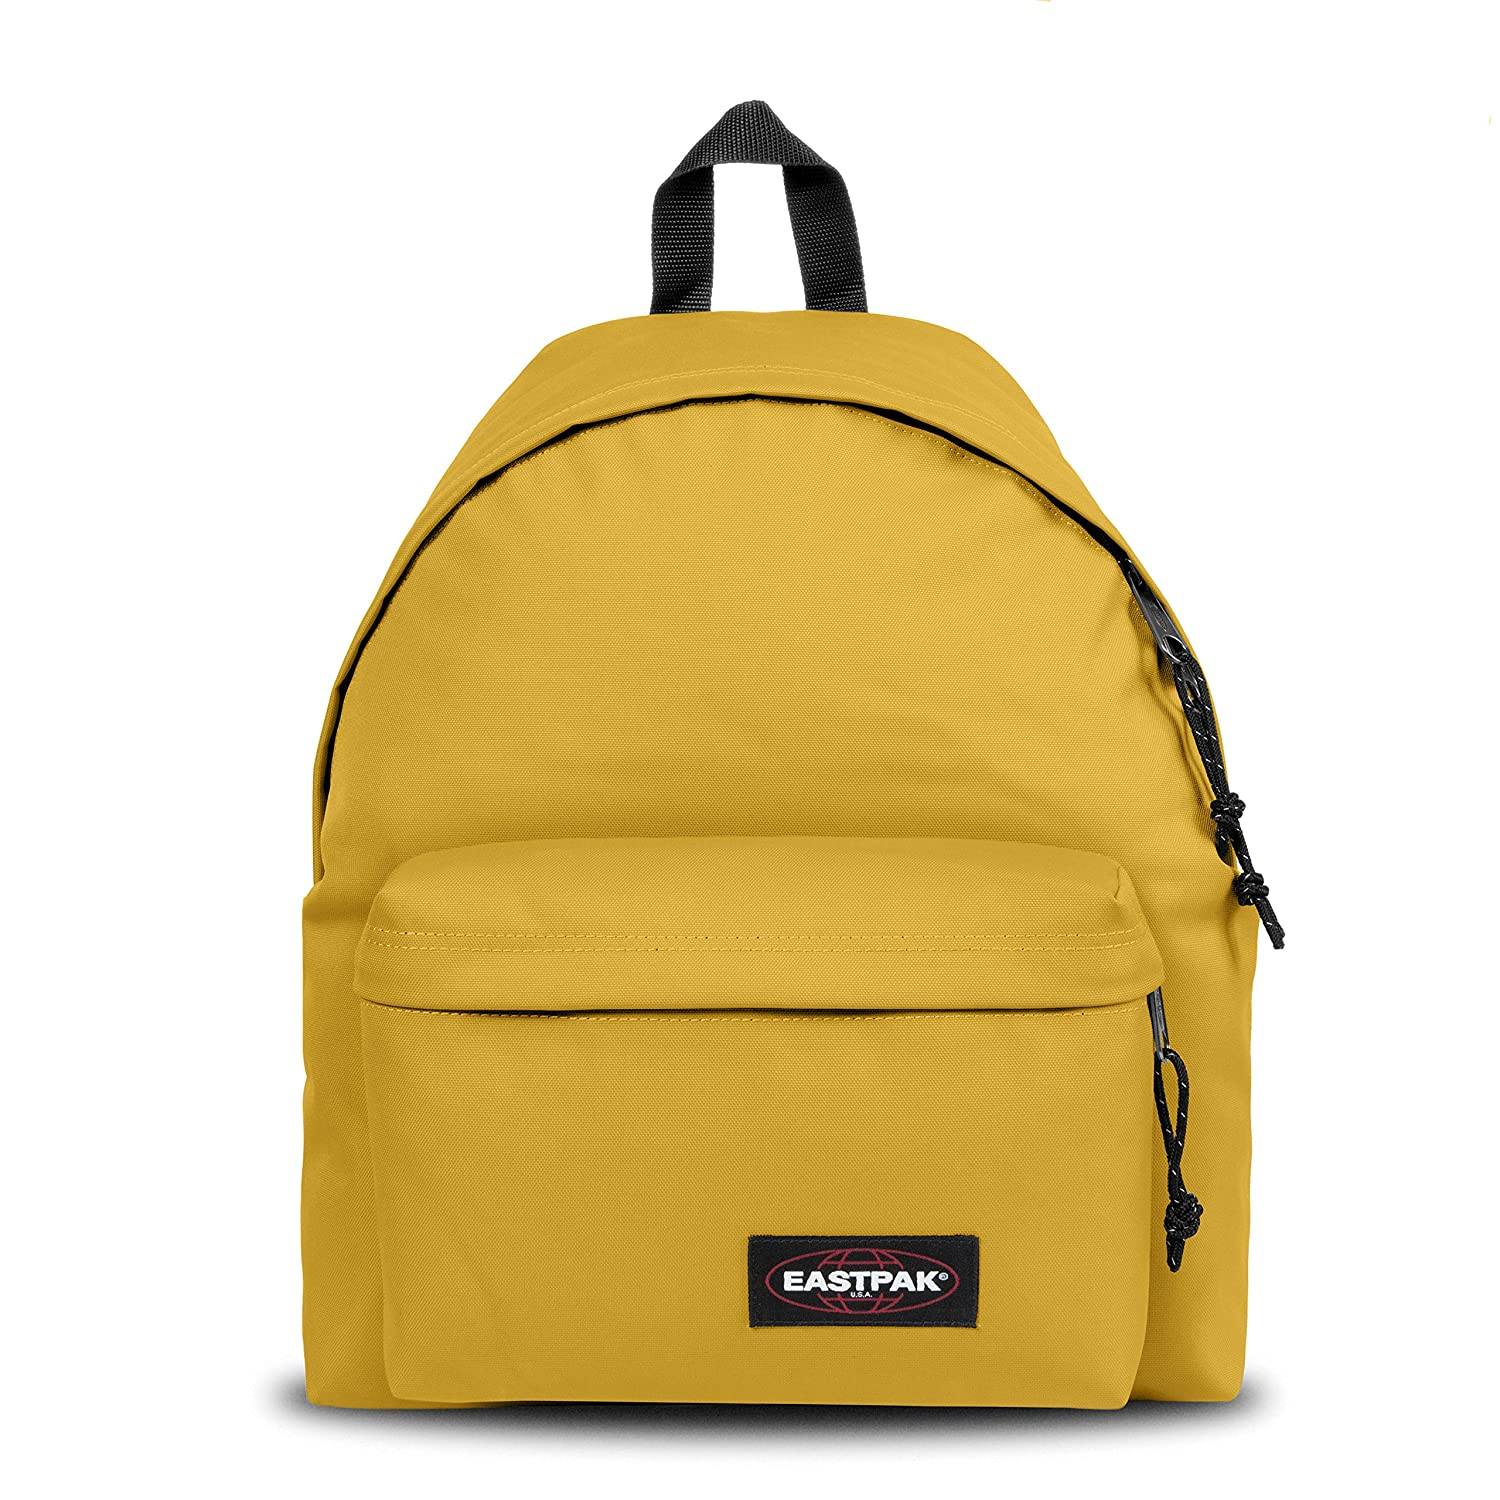 Eastpak Padded PakR Mochila, 40 cm, 24 litros, Amarillo (Exotic Yellow): Amazon.es: Equipaje